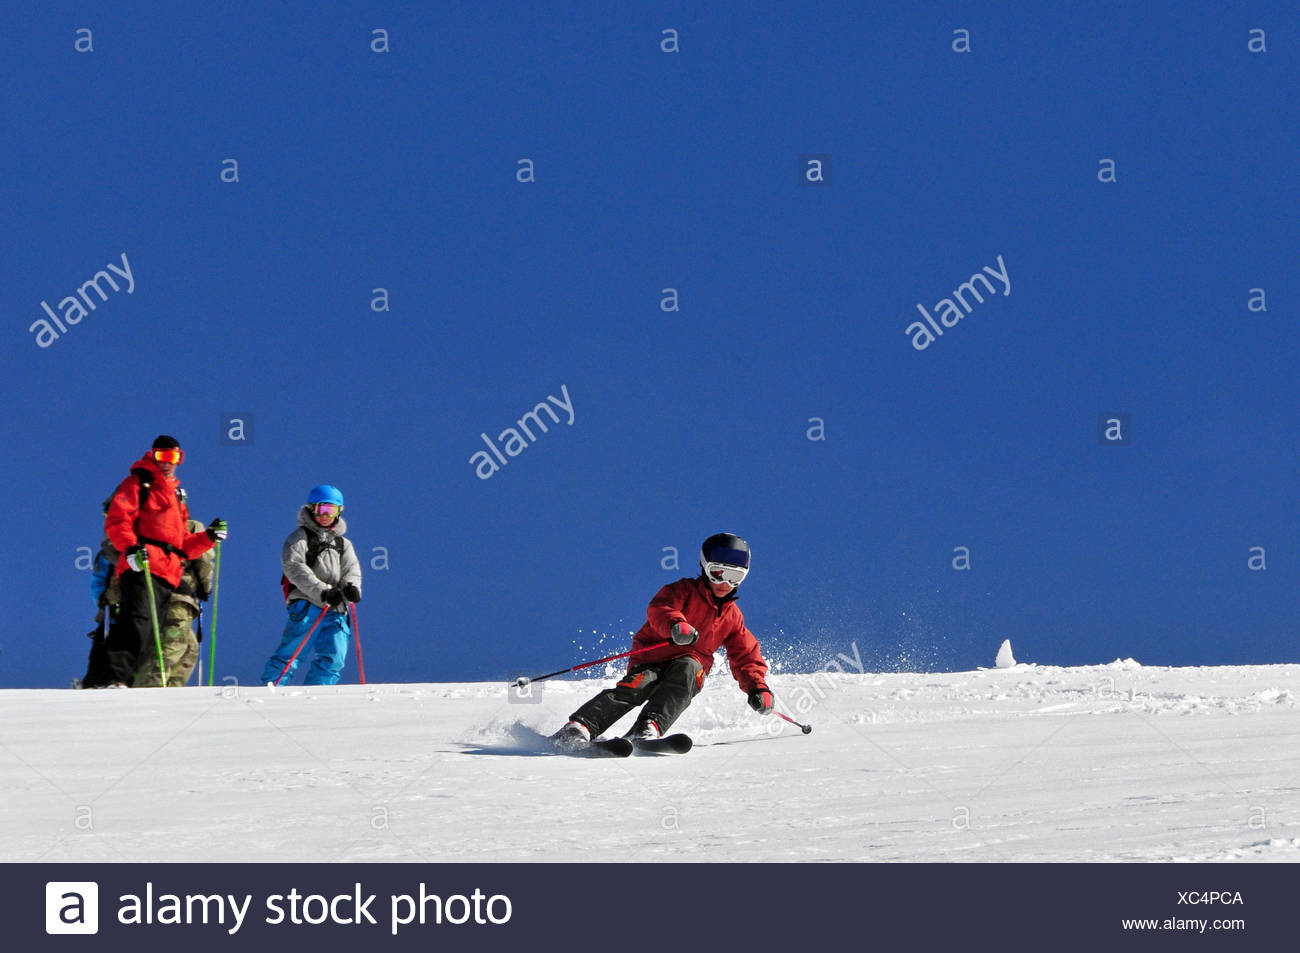 A young male skier skiing in the backcountry while his instructor looks on at Kirkwood Mountain Resort, CA. - Stock Image